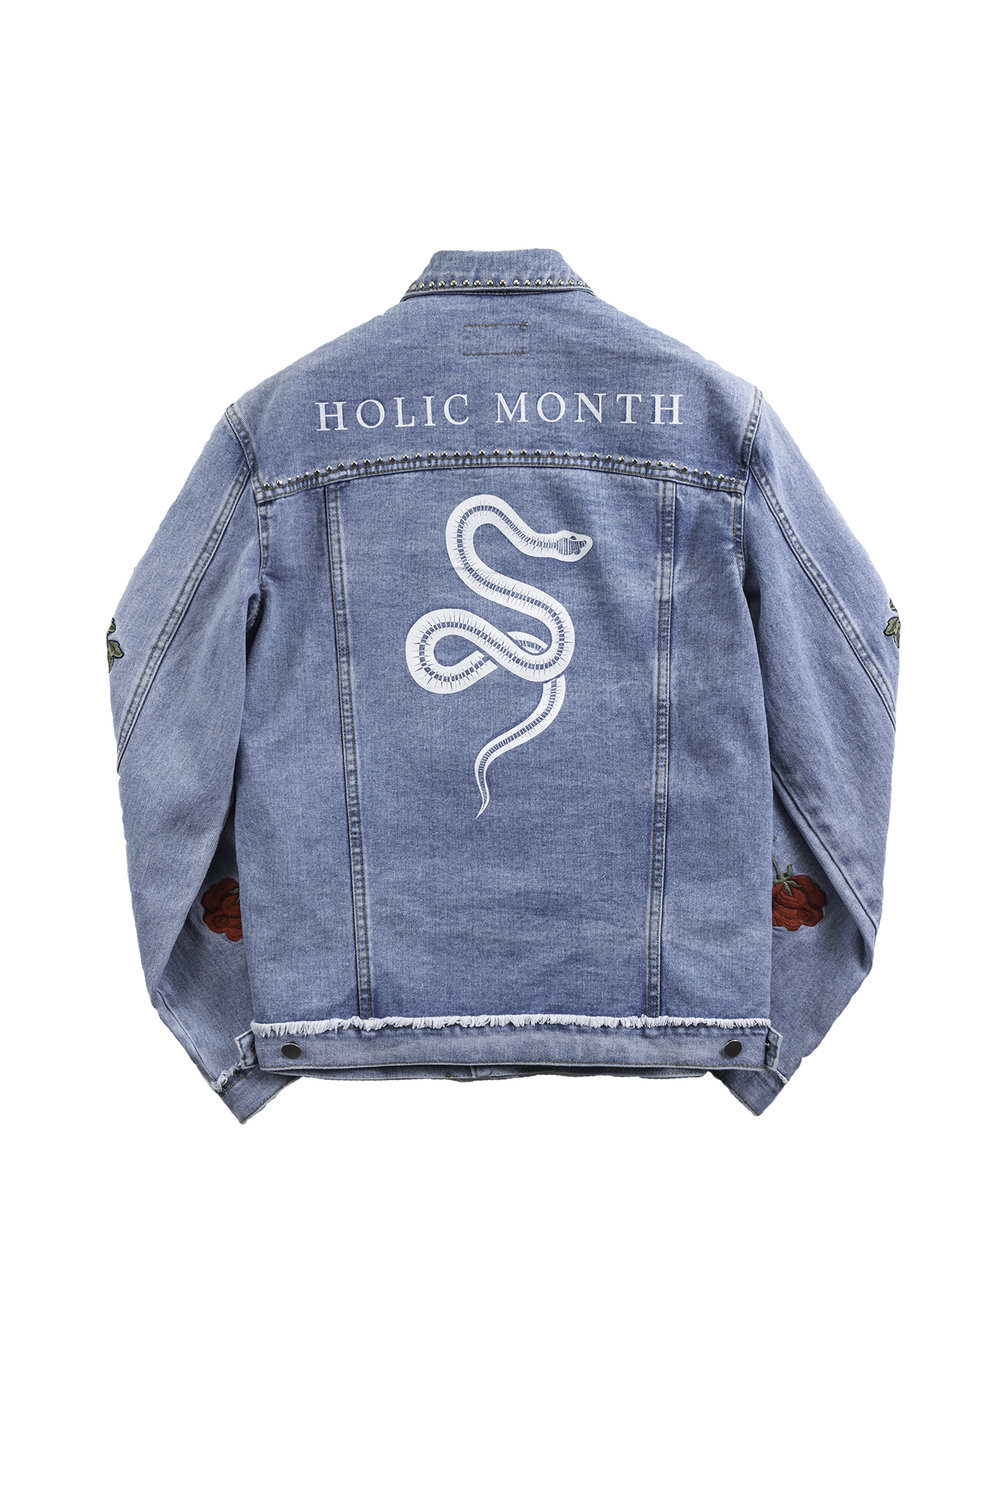 794c8fed9fd 13 MONTH – ROSE EMBROIDERED OVERSIZED DENIM JACKET — FIG COLLECTIVE